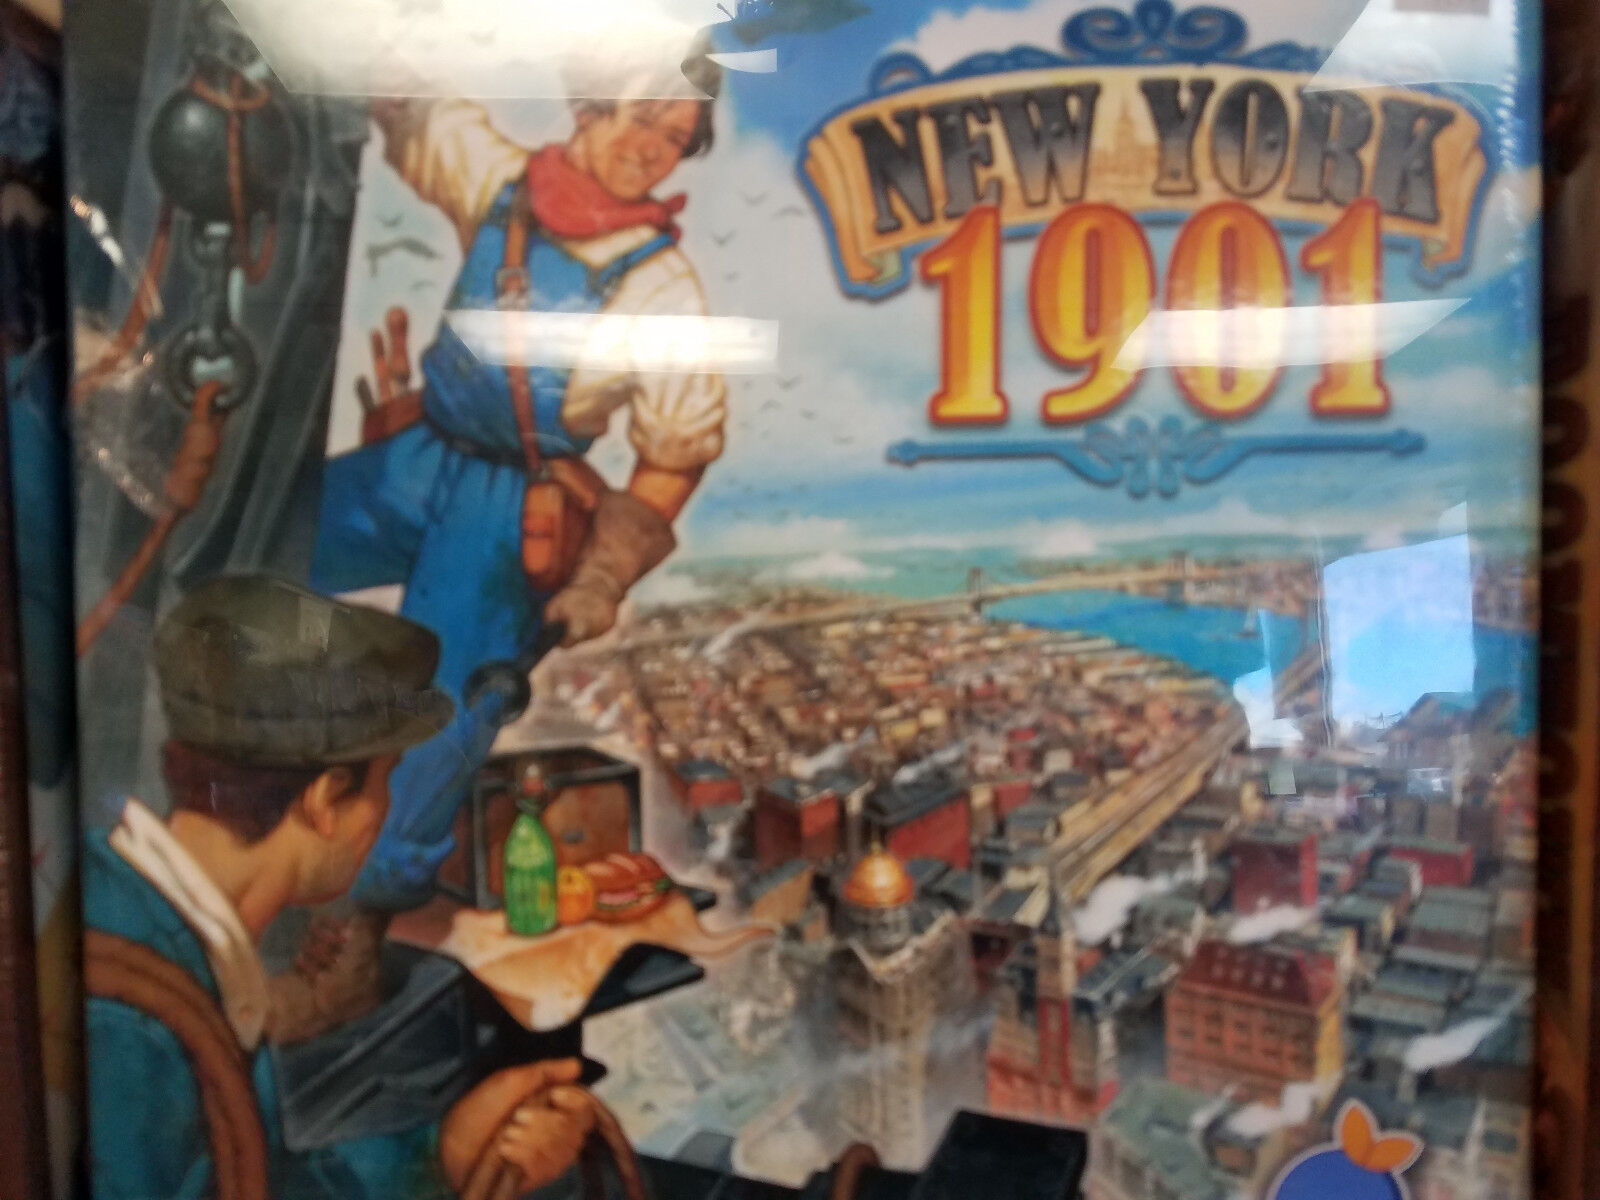 New York 1901 - Blau Orange Games Board Game New